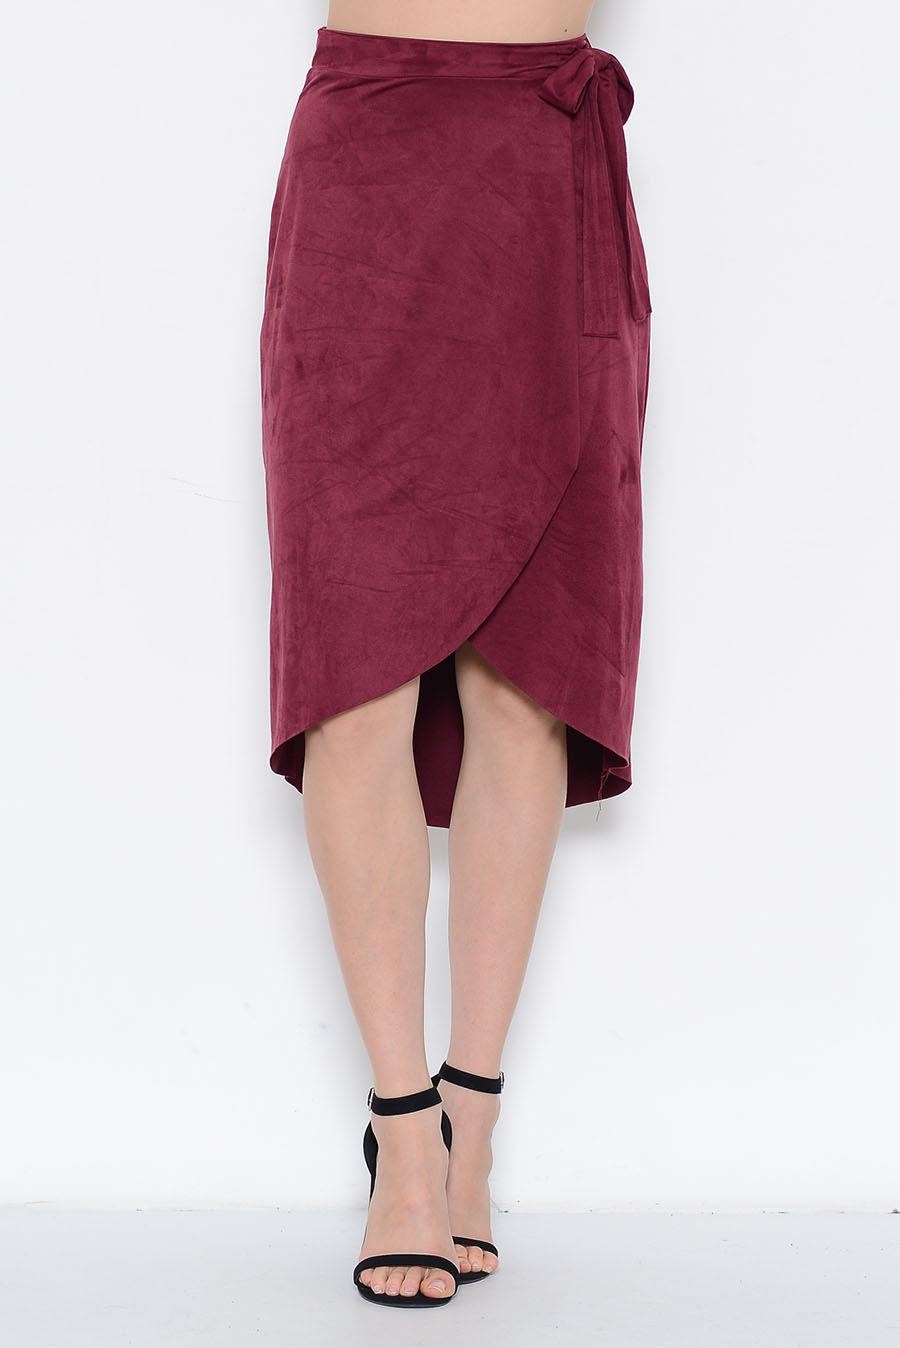 SUEDE OVER TIE SIDE SKIRT - orangeshine.com